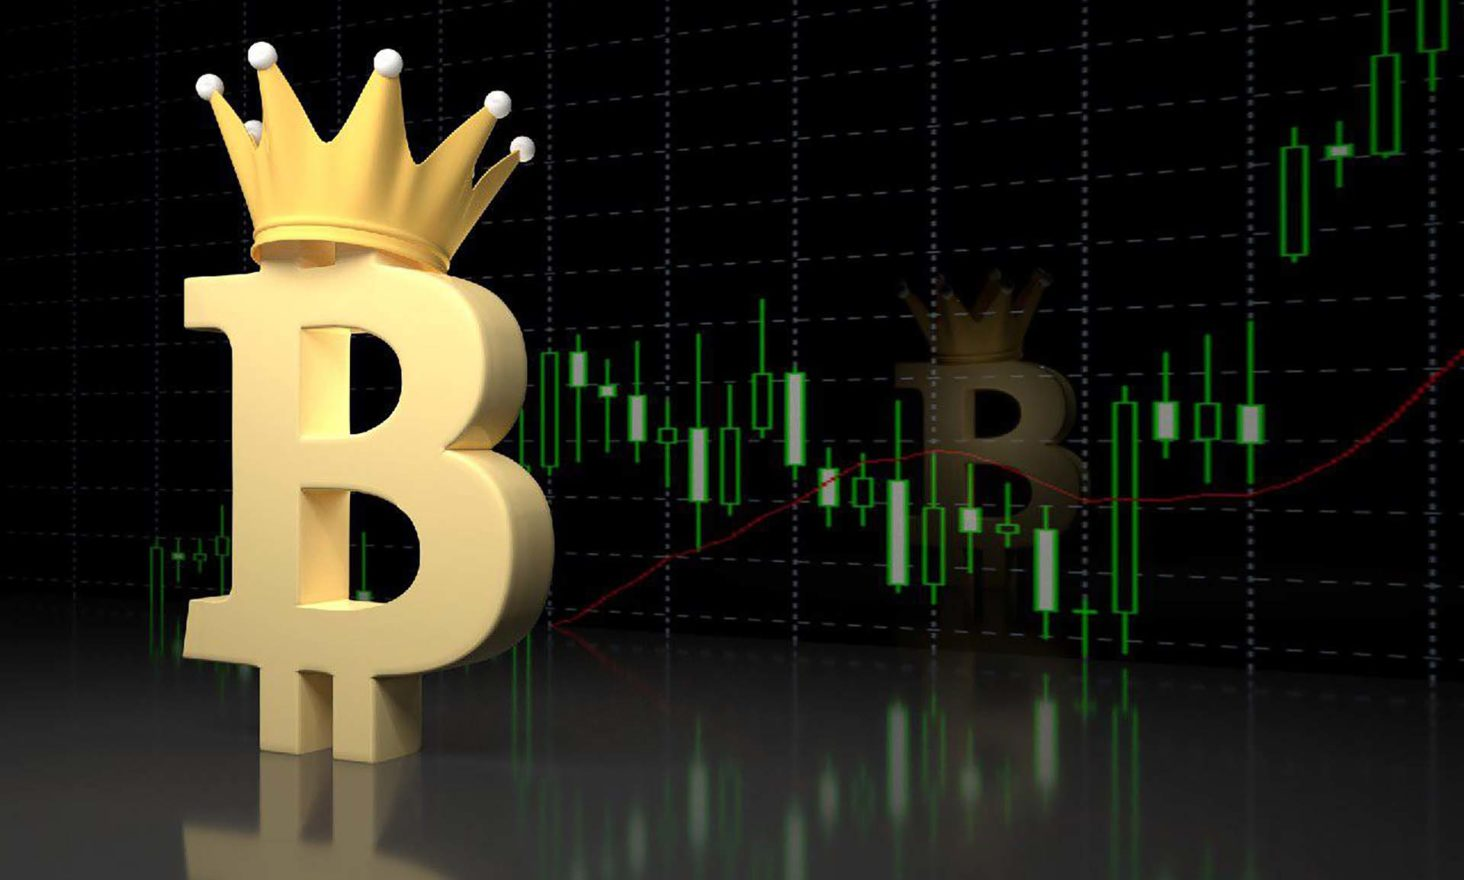 Despite Detractors Bitcoin Remains the Best Performing Currency